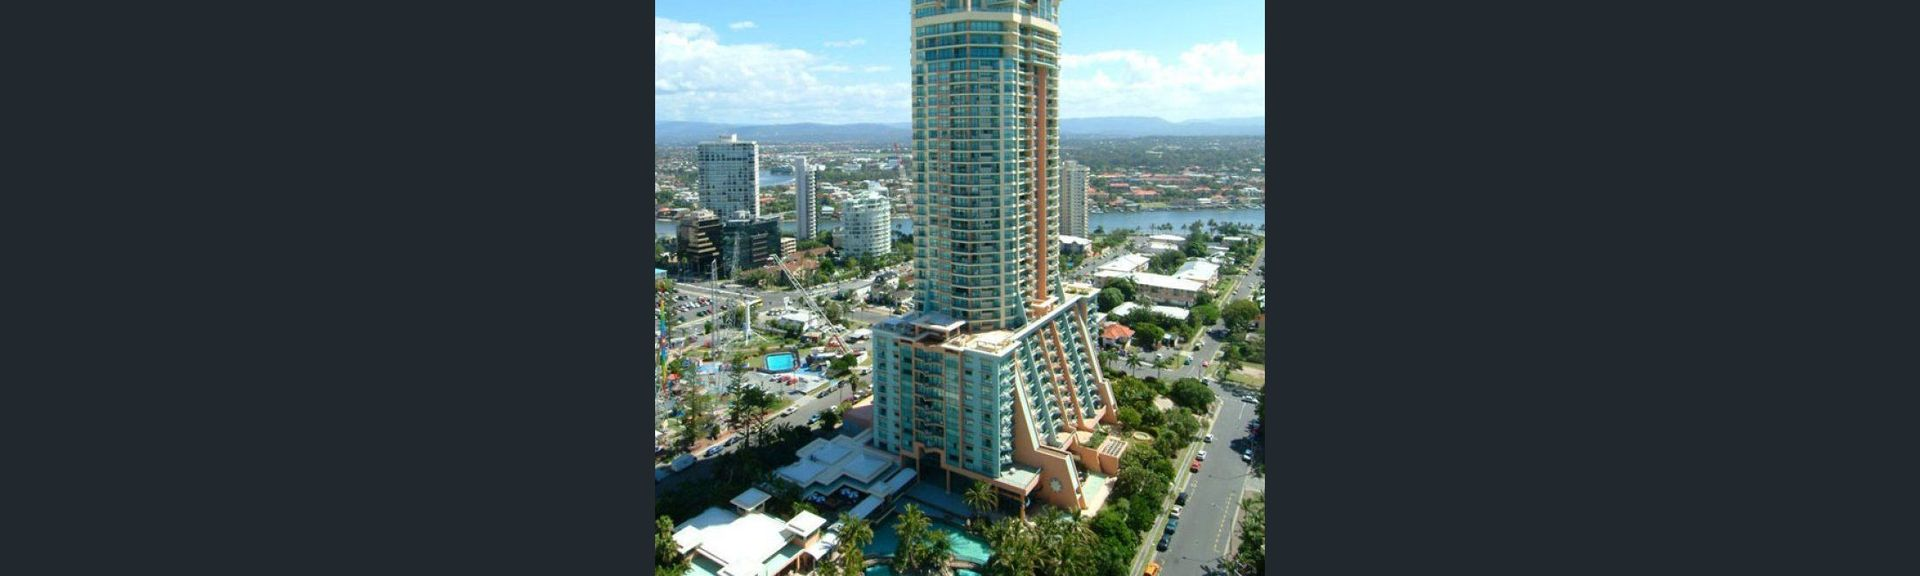 Infinity Attraction, Surfers Paradise, Queensland, Austrália